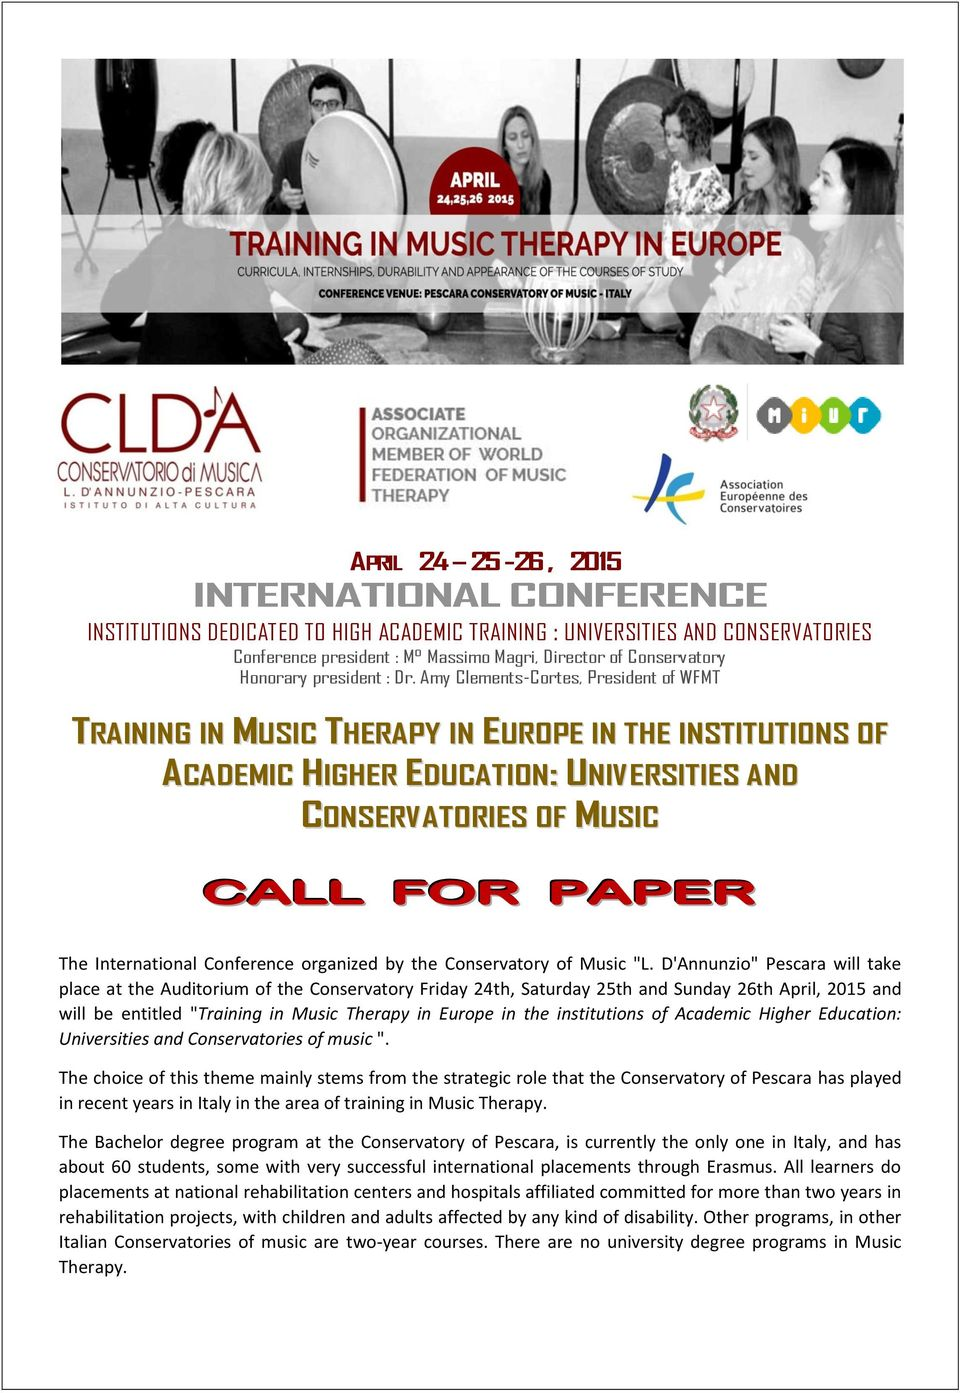 Amy Clements-Cortes, President of WFMT TRAINING IN MUSIC THERAPY IN EUROPE IN THE INSTITUTIONS OF ACADEMIC HIGHER EDUCATION: UNIVERSITIES AND CONSERVATORIES OF MUSIC CALL FOR PAPER The International